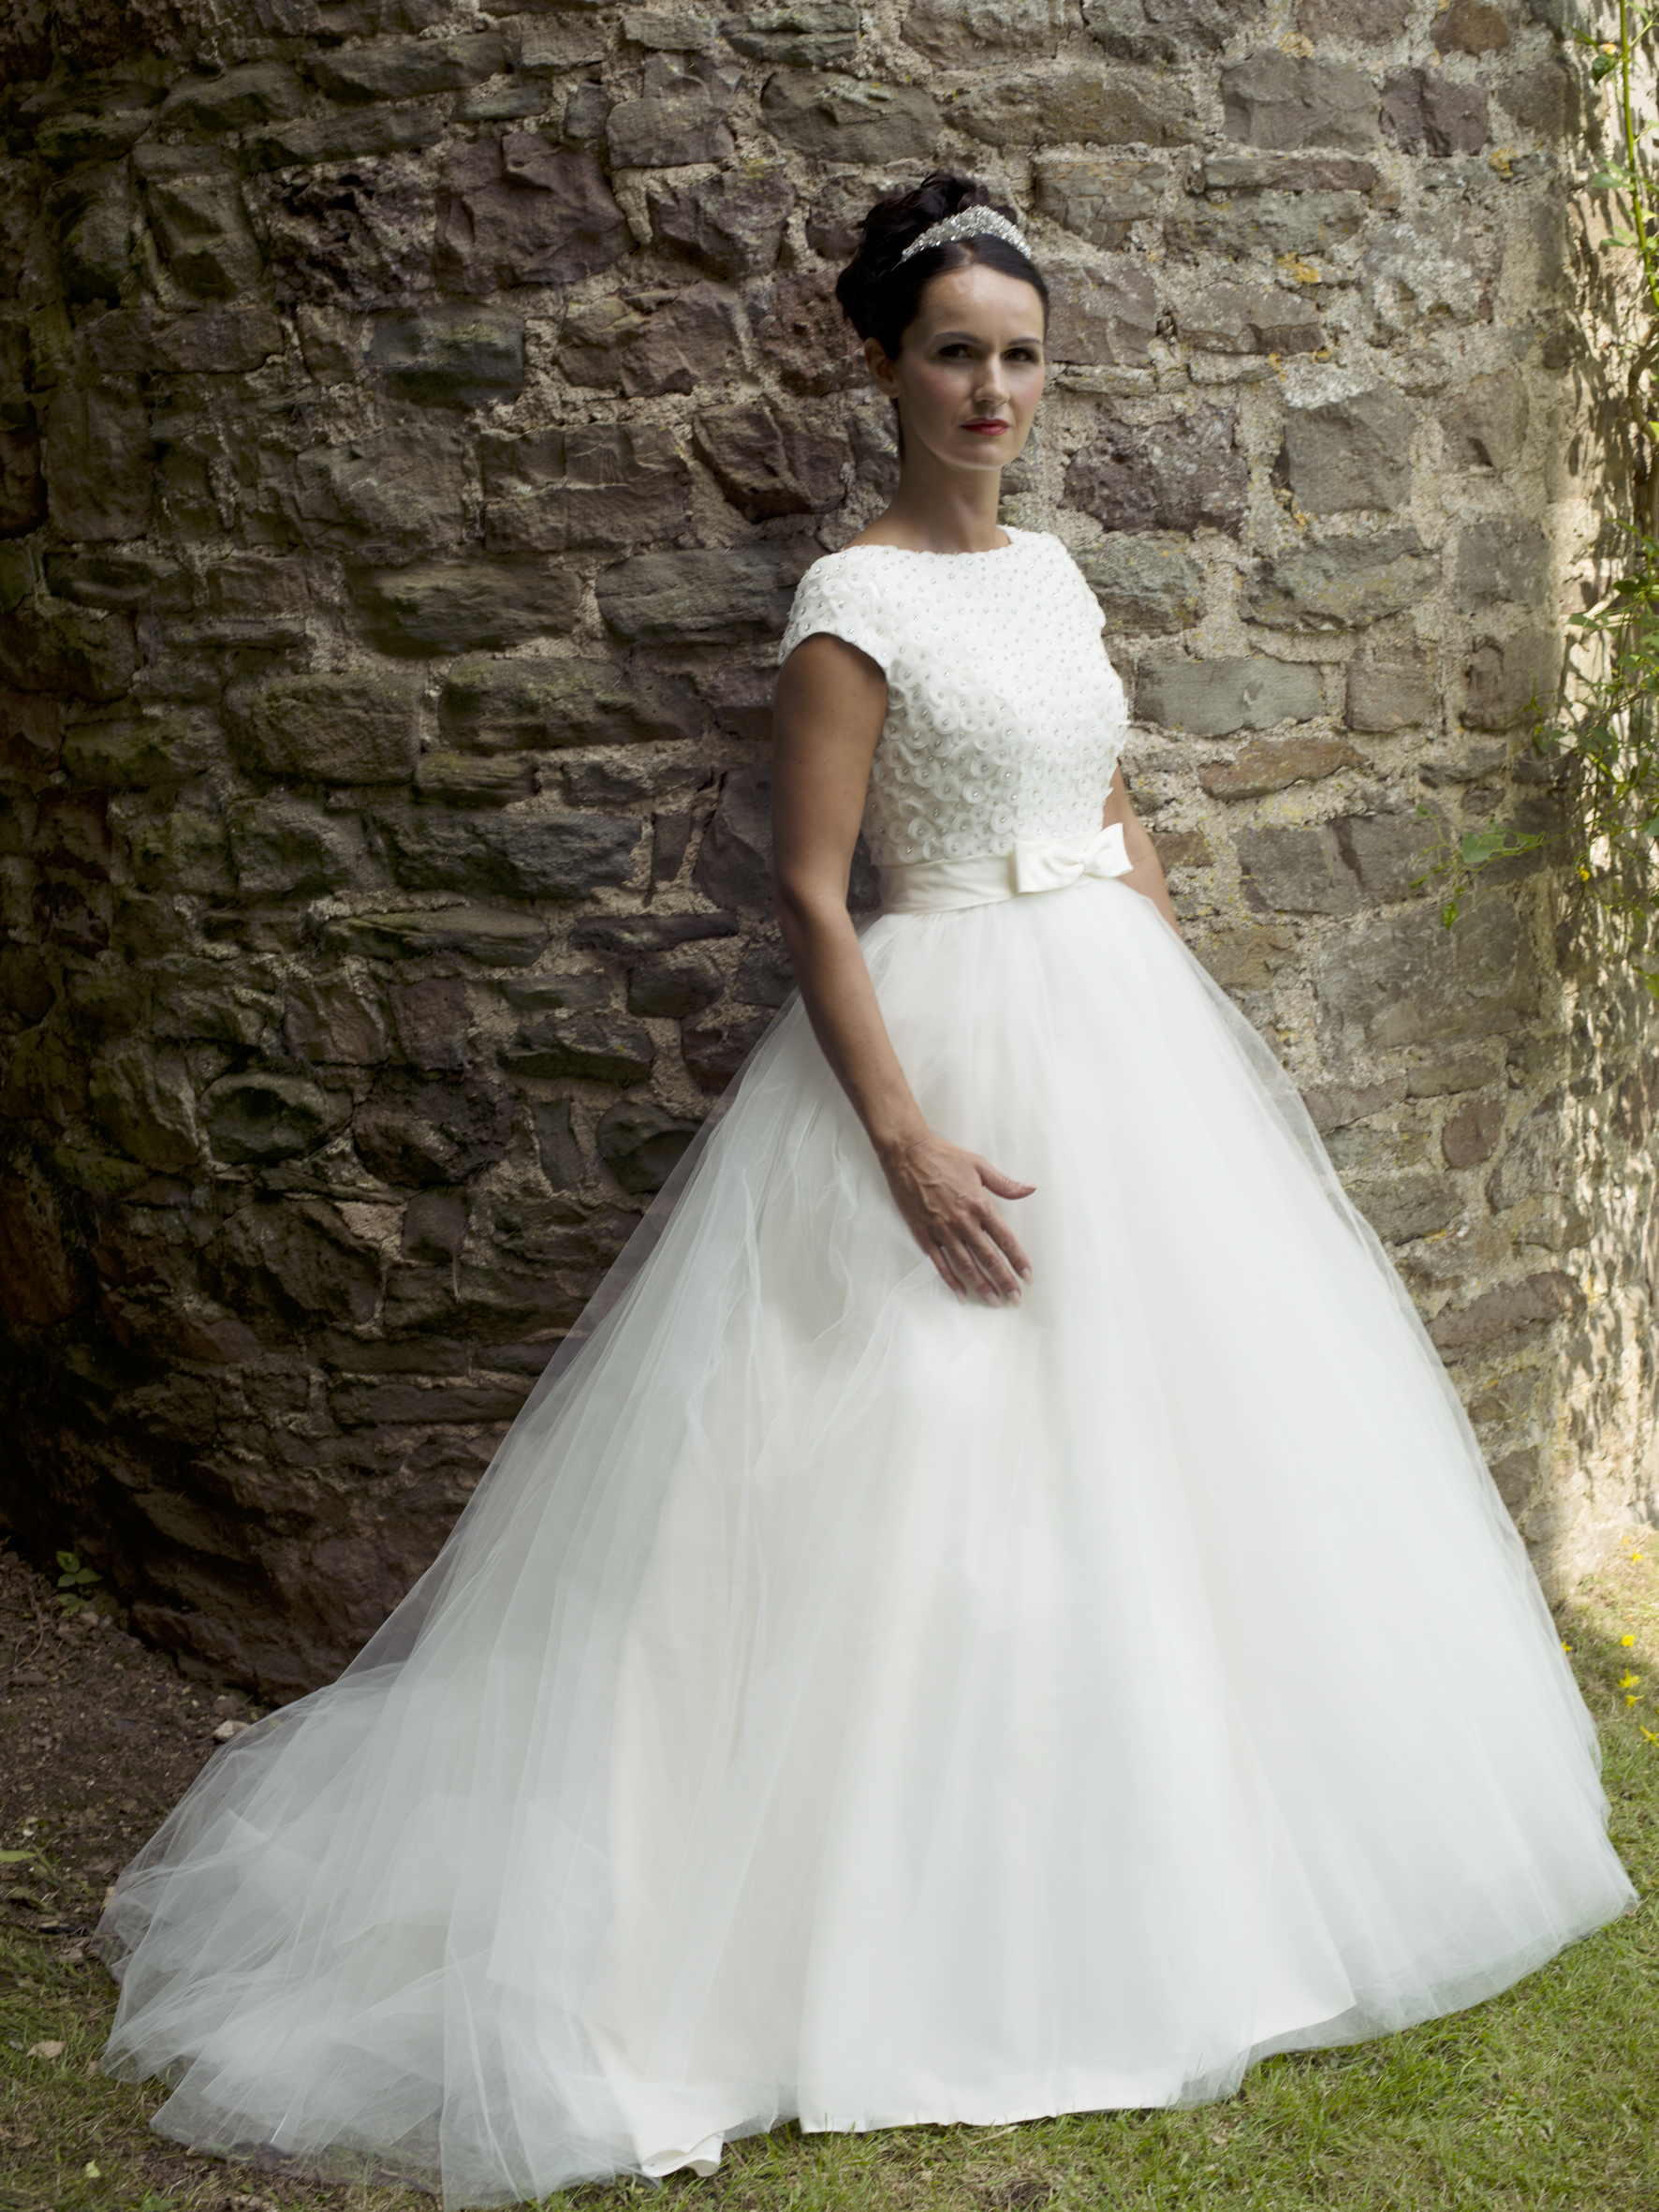 A full skirt withlayers of English netprovidesperfect contrast to the stunning crystal-embellished, cap-sleeved bodice with deep V back detail.